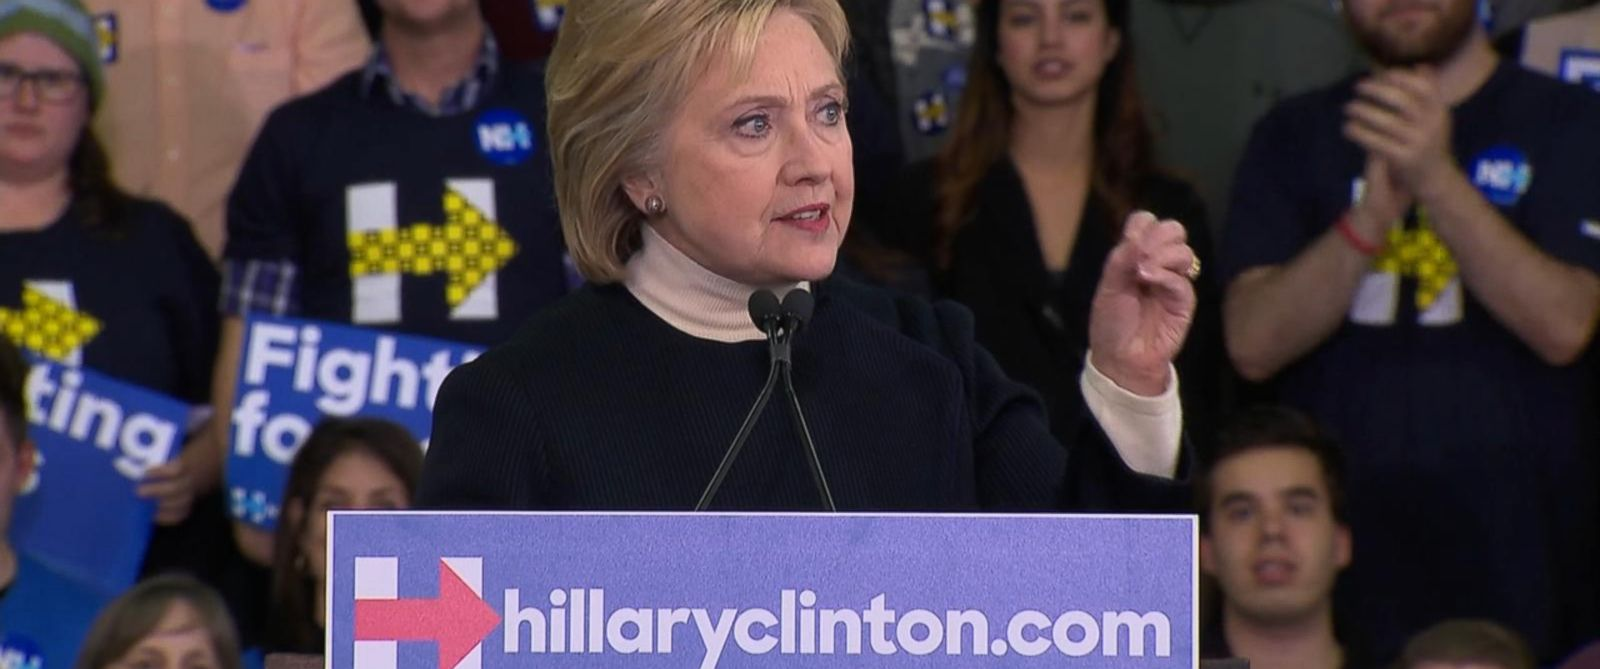 PHOTO: Hillary Clinton gave a speech after the results of the New Hampshire primary were revealed, Feb. 9, 2016.